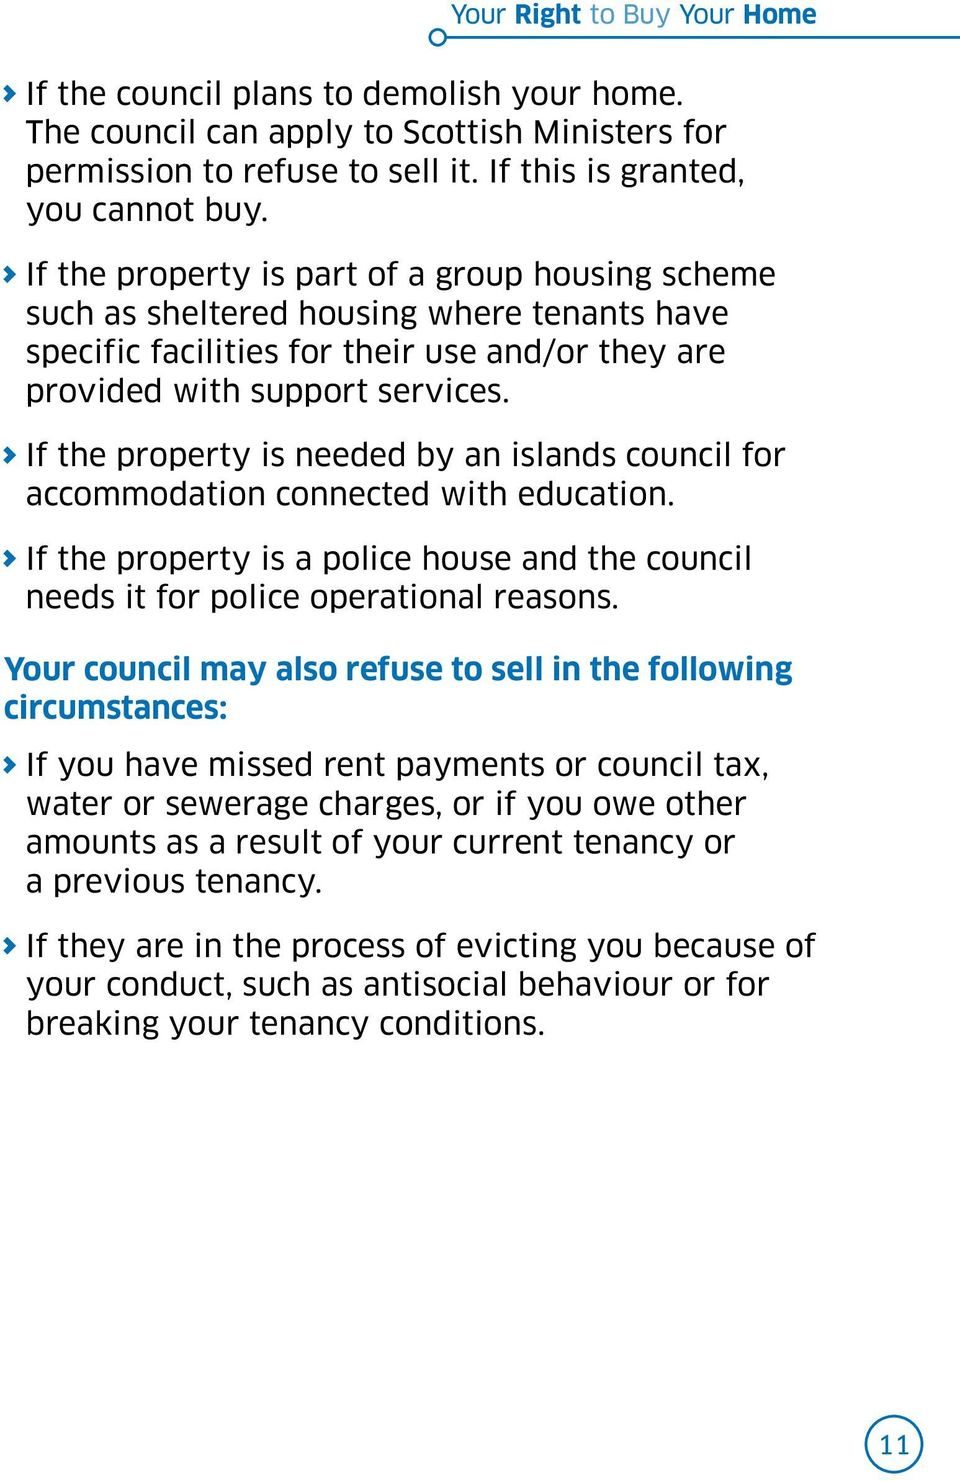 If the property is needed by an islands council for accommodation connected with education. If the property is a police house and the council needs it for police operational reasons.